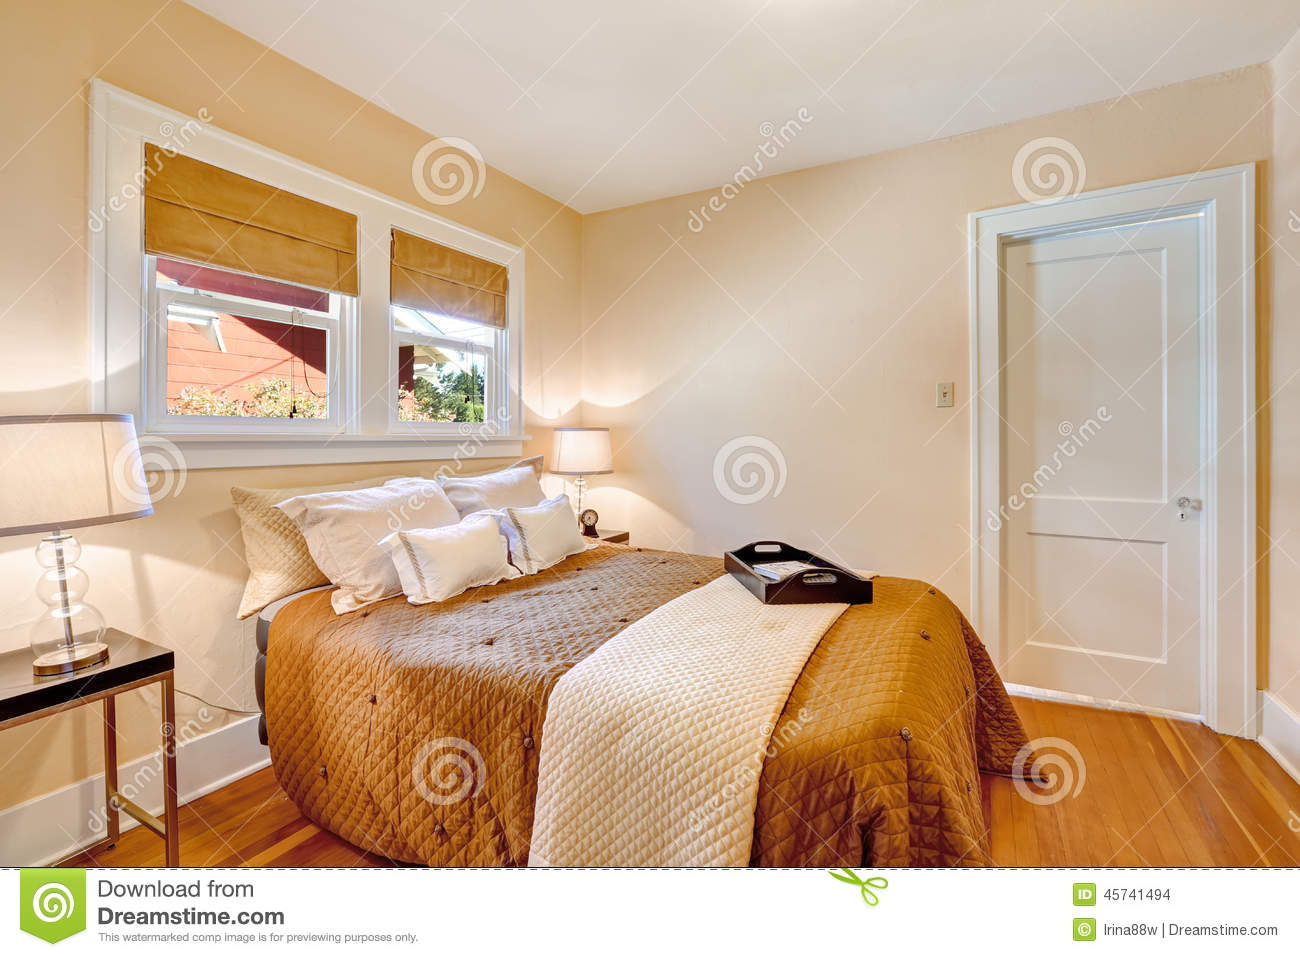 Warm bedroom interior with brown bedding and ivory blanket stock photo image of ivory tones - Spots of color in the bedroom linens and throws ...